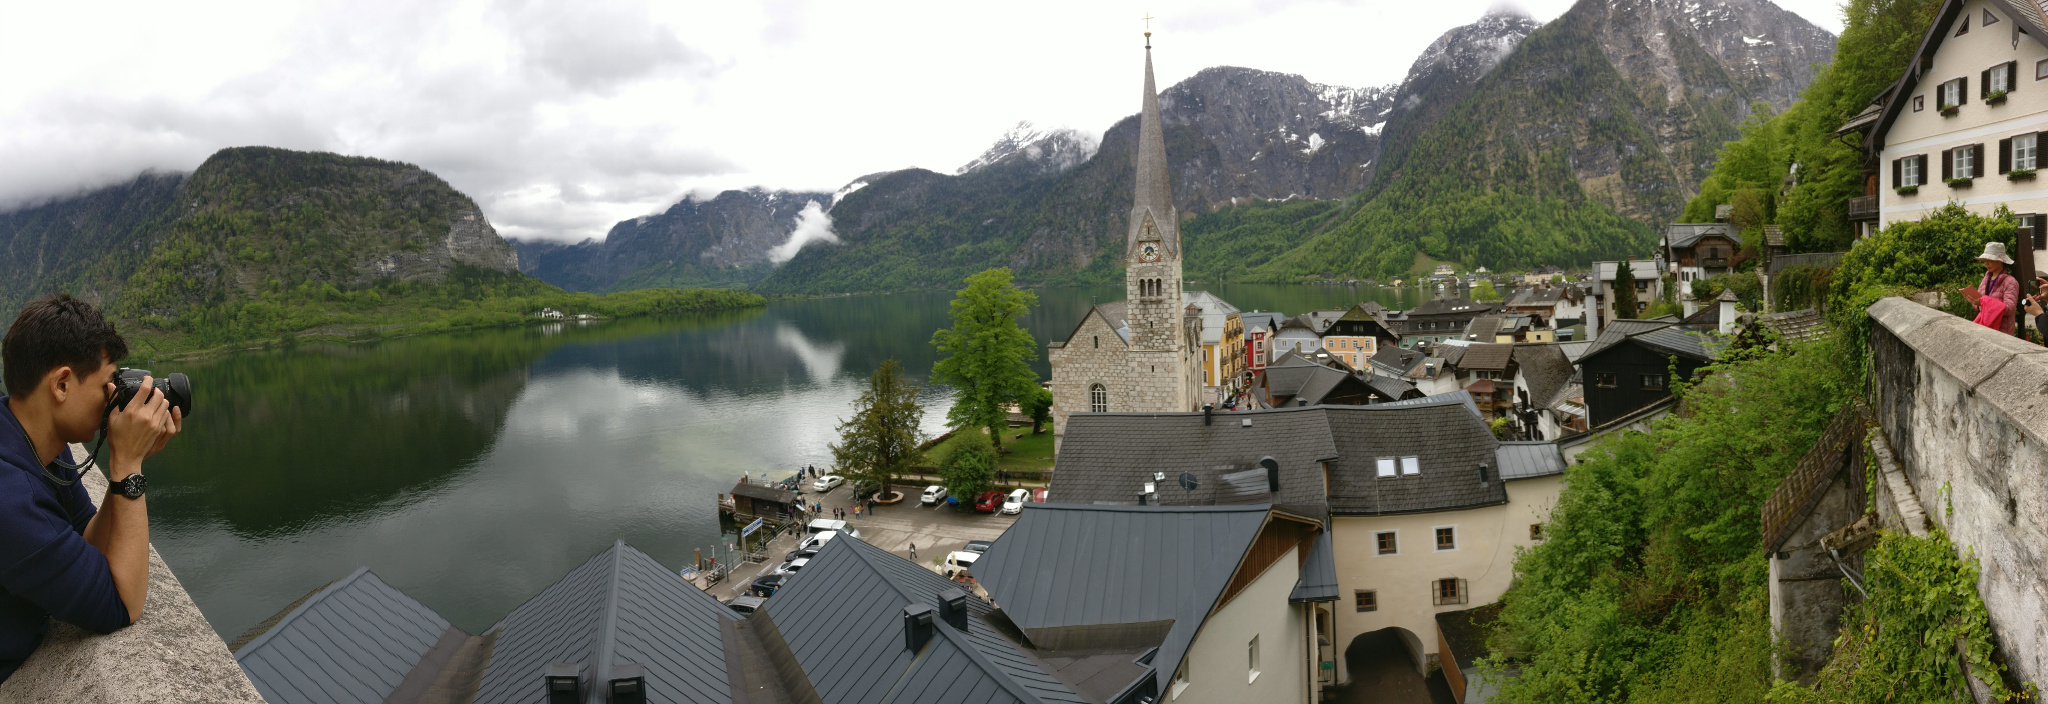 Hallstatt panoramic